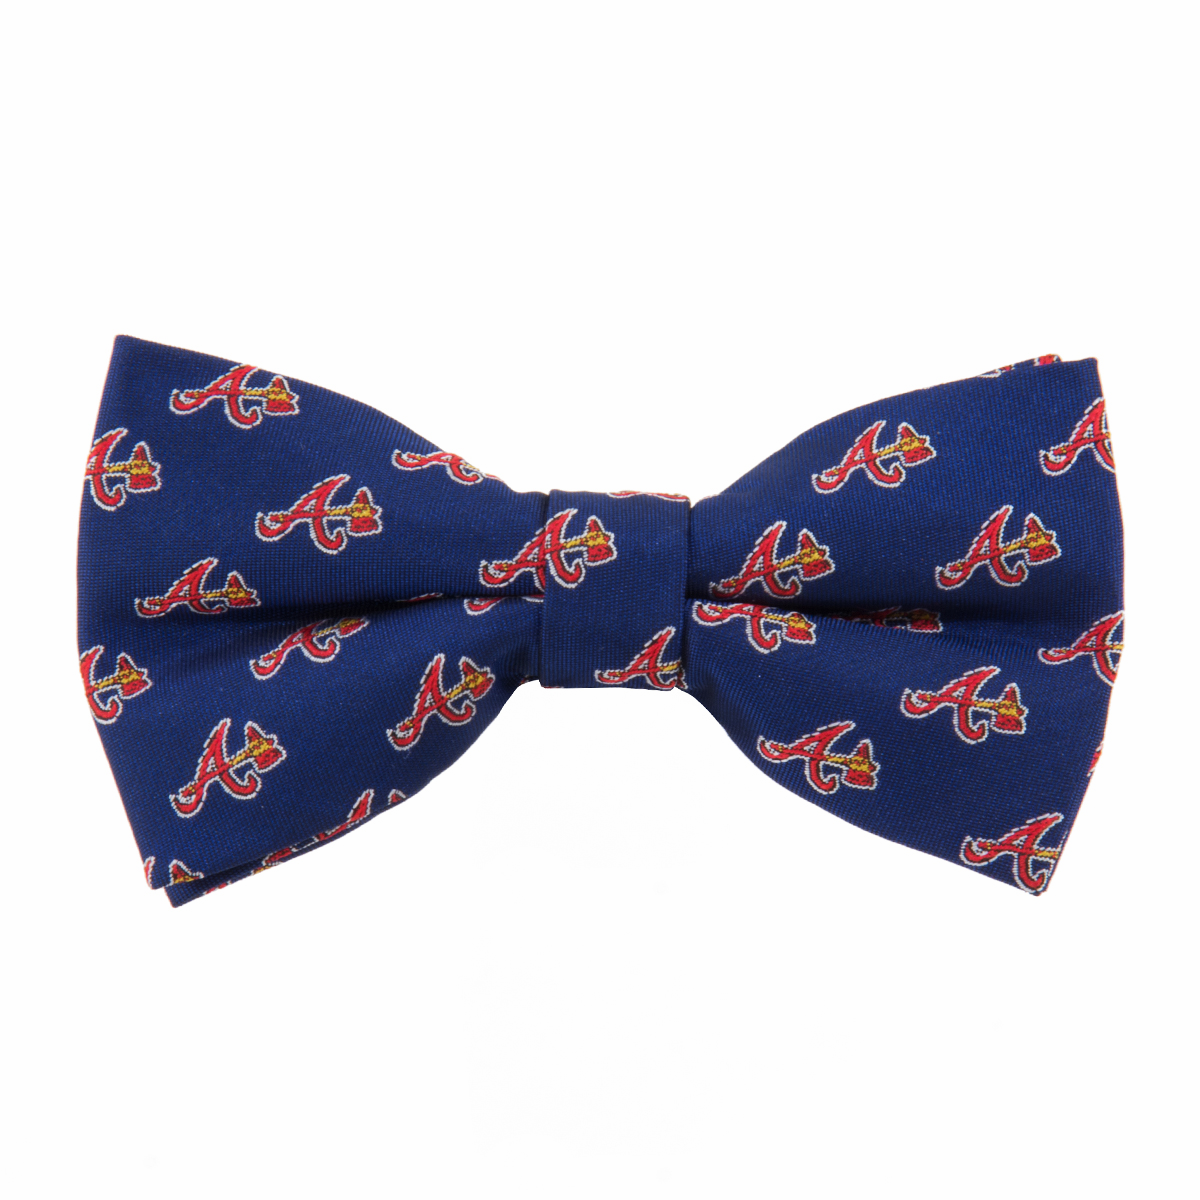 Atlanta Braves<br>Woven Poly Repeat<br>Baseball Bow Tie<br>ONLY 1 LEFT!